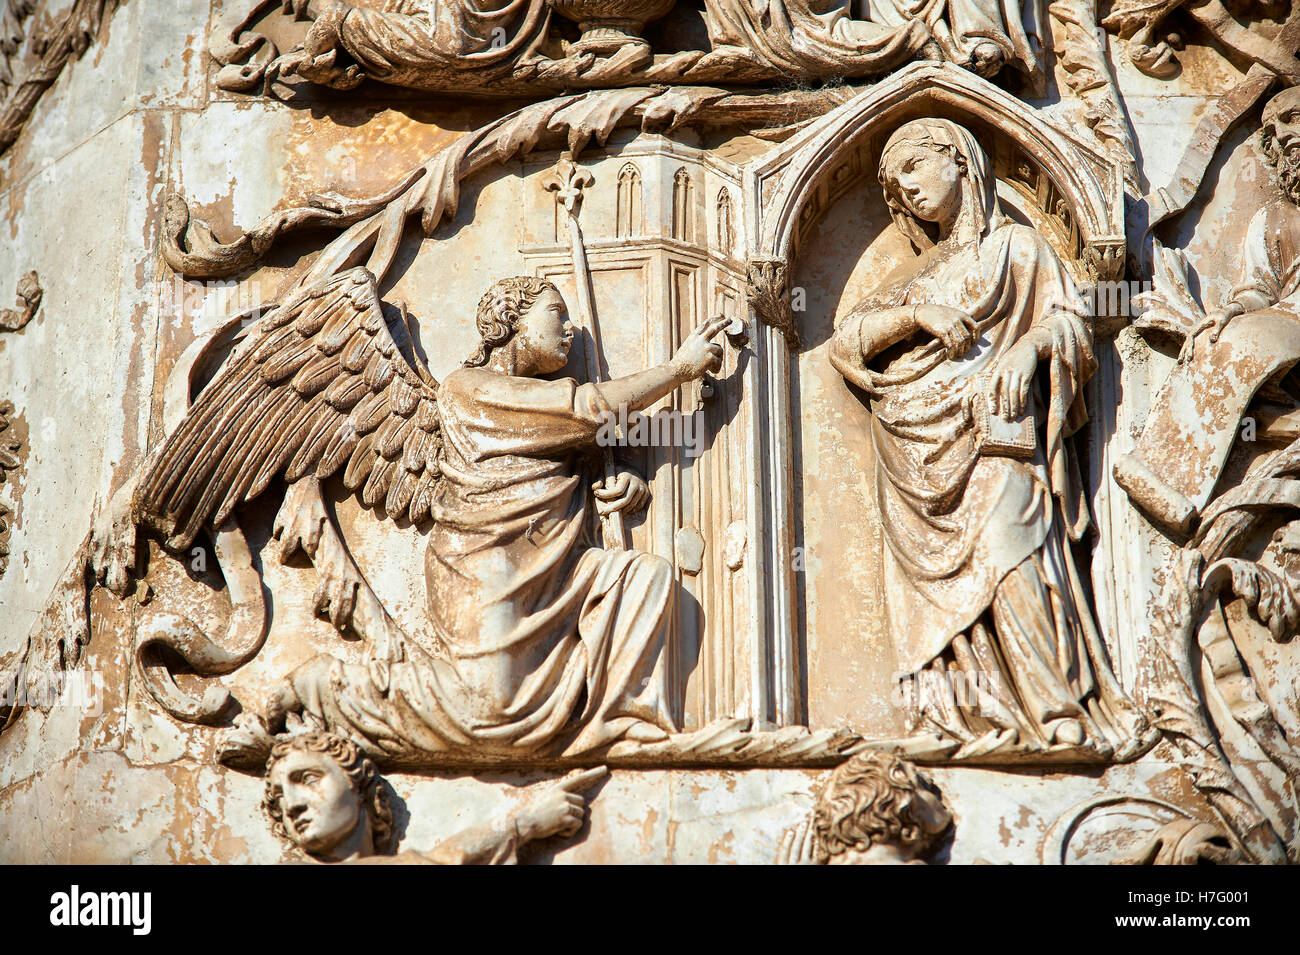 Bas-relief of the Annunciation by Maitani, circa1310, Tuscan Gothic,  facade Orvieto Duomo Cathedral, Umbria, Italy - Stock Image